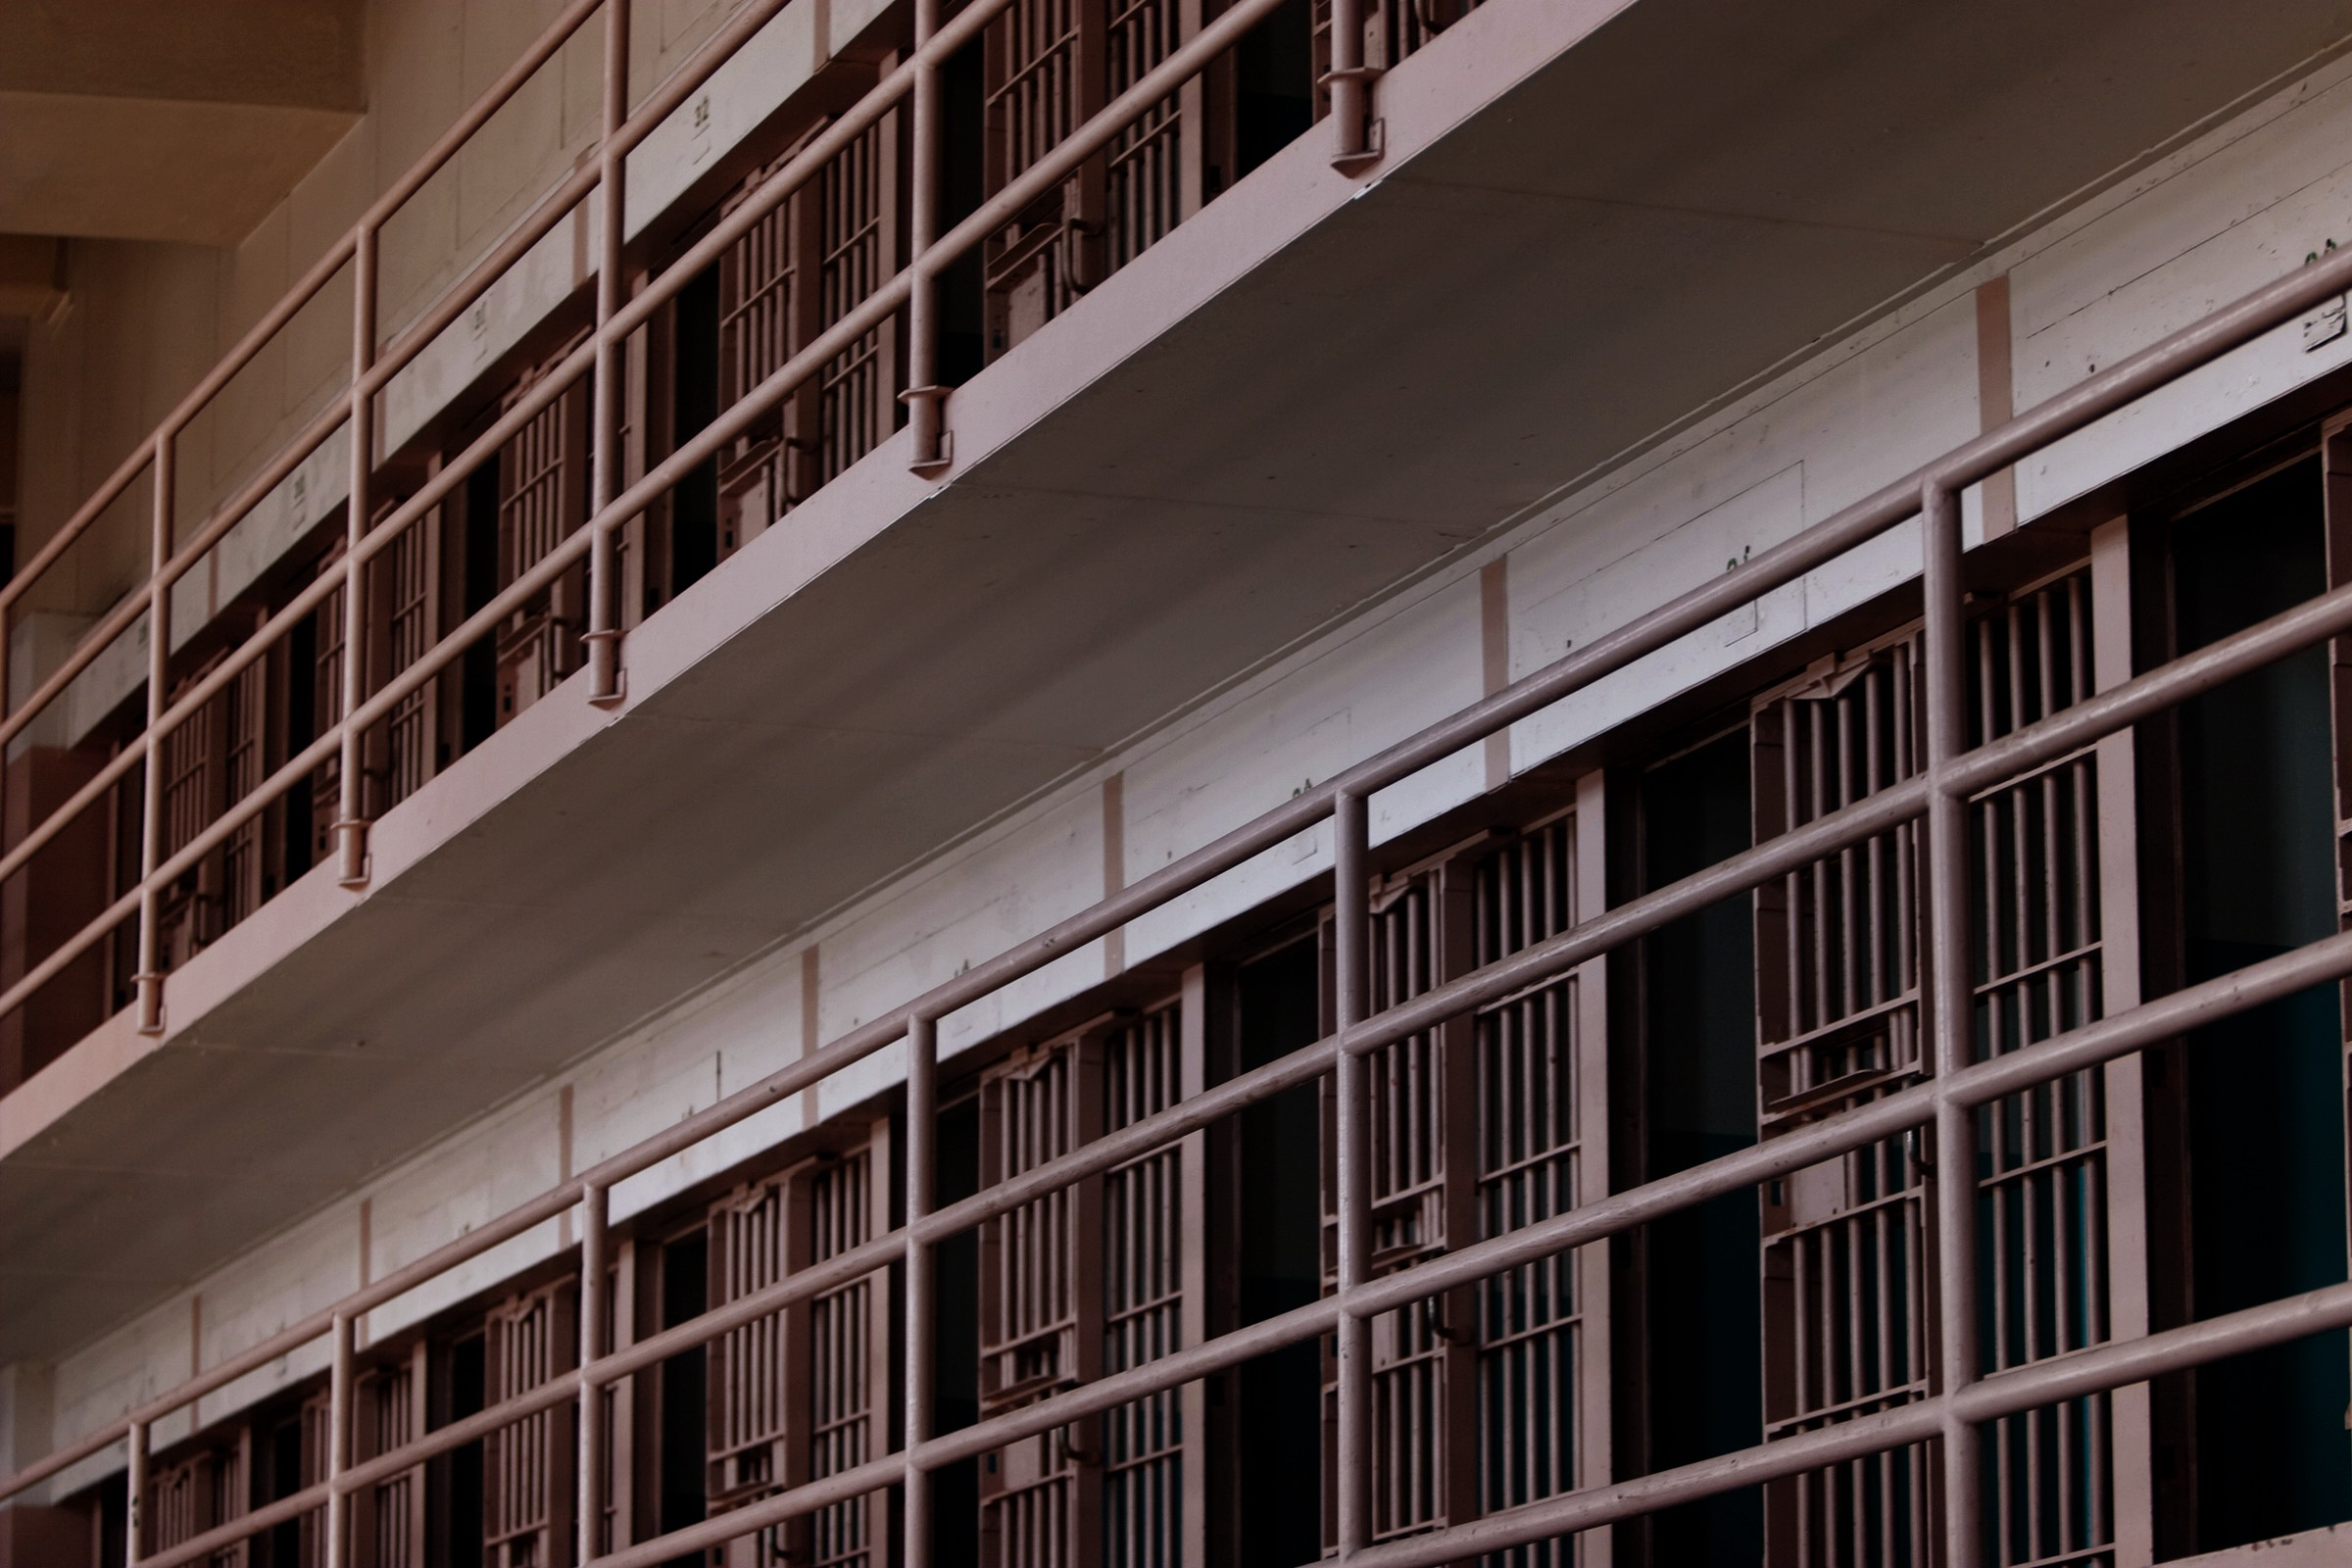 Rows of prison cells.